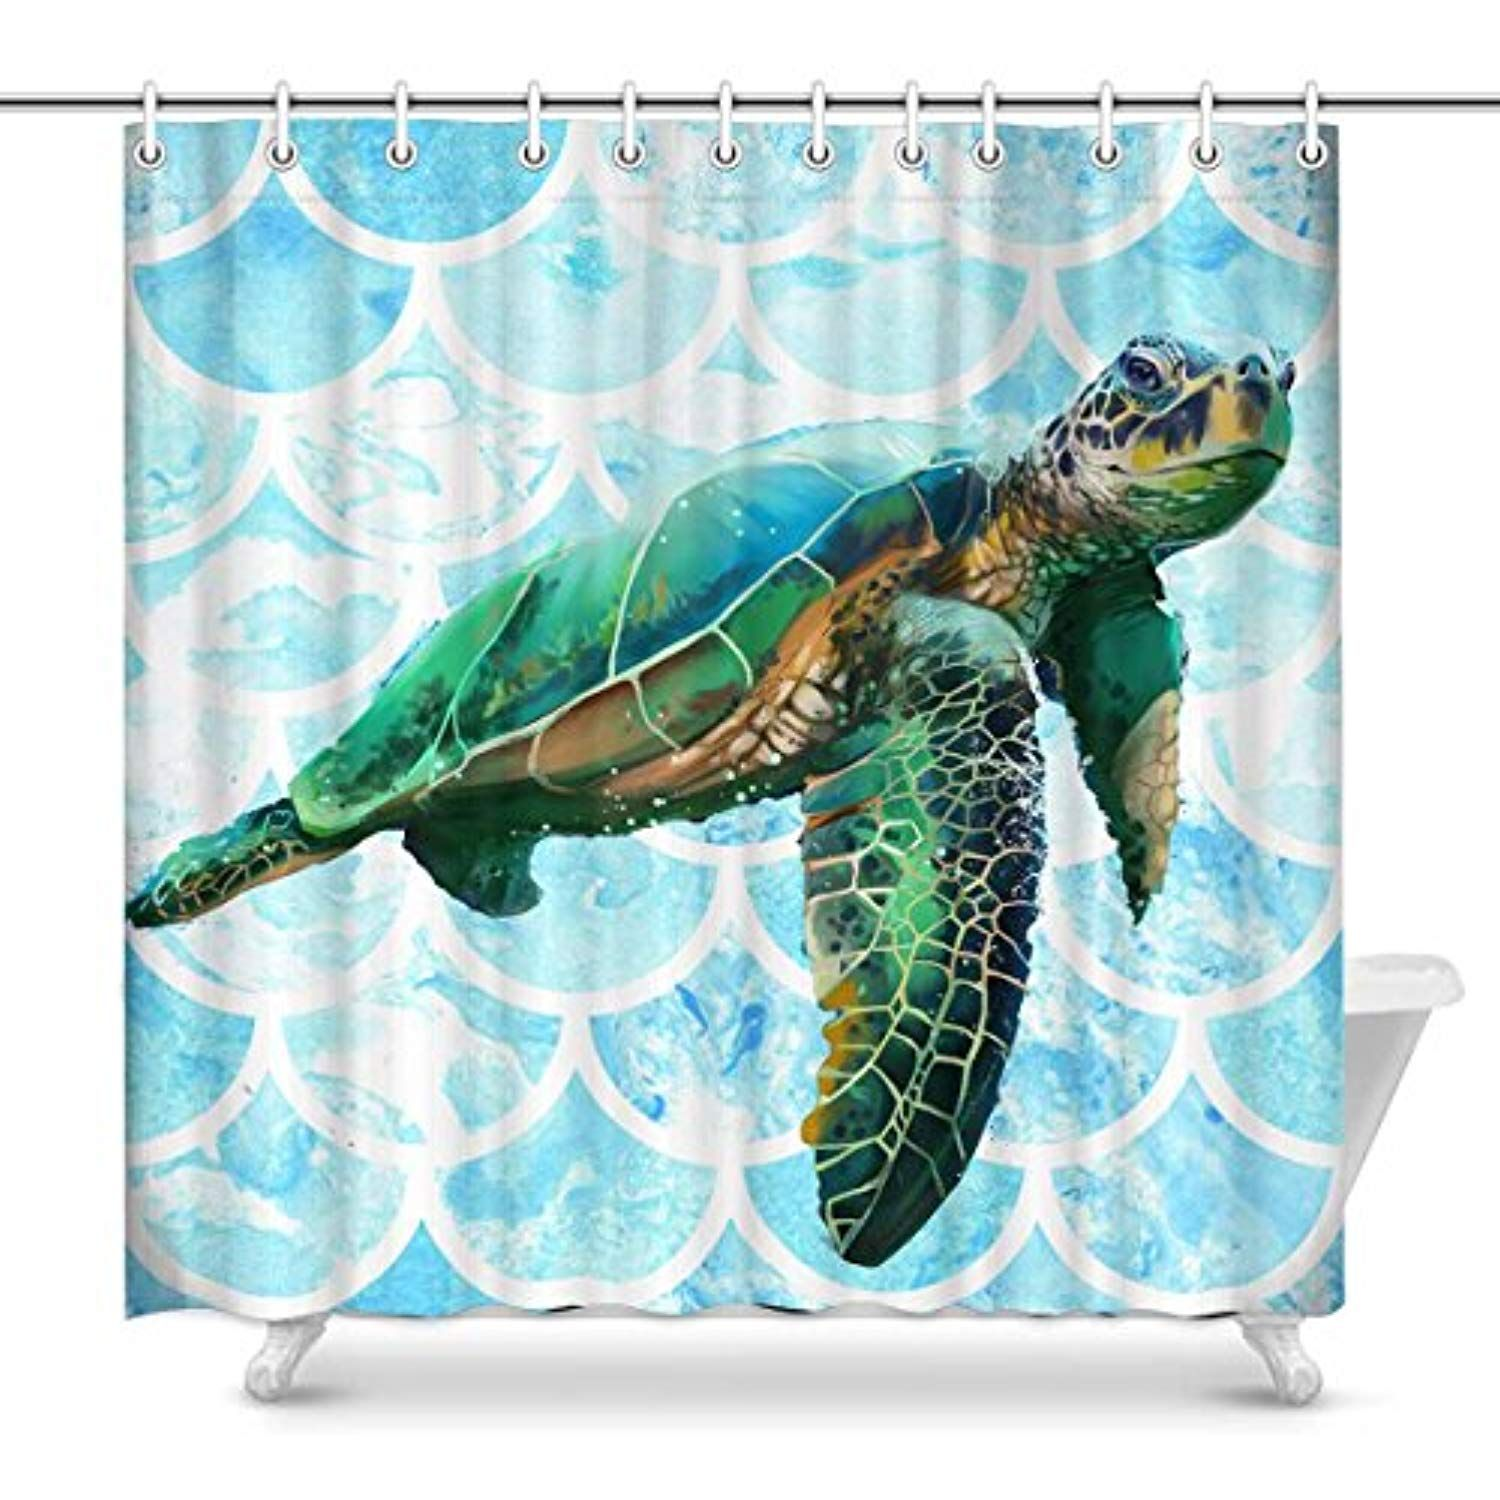 InterestPrint Unique Beautiful Sea Turtles Shower Curtain Home Decor Collection Bath Waterproof Fabric Bathroom With Hooks69x72